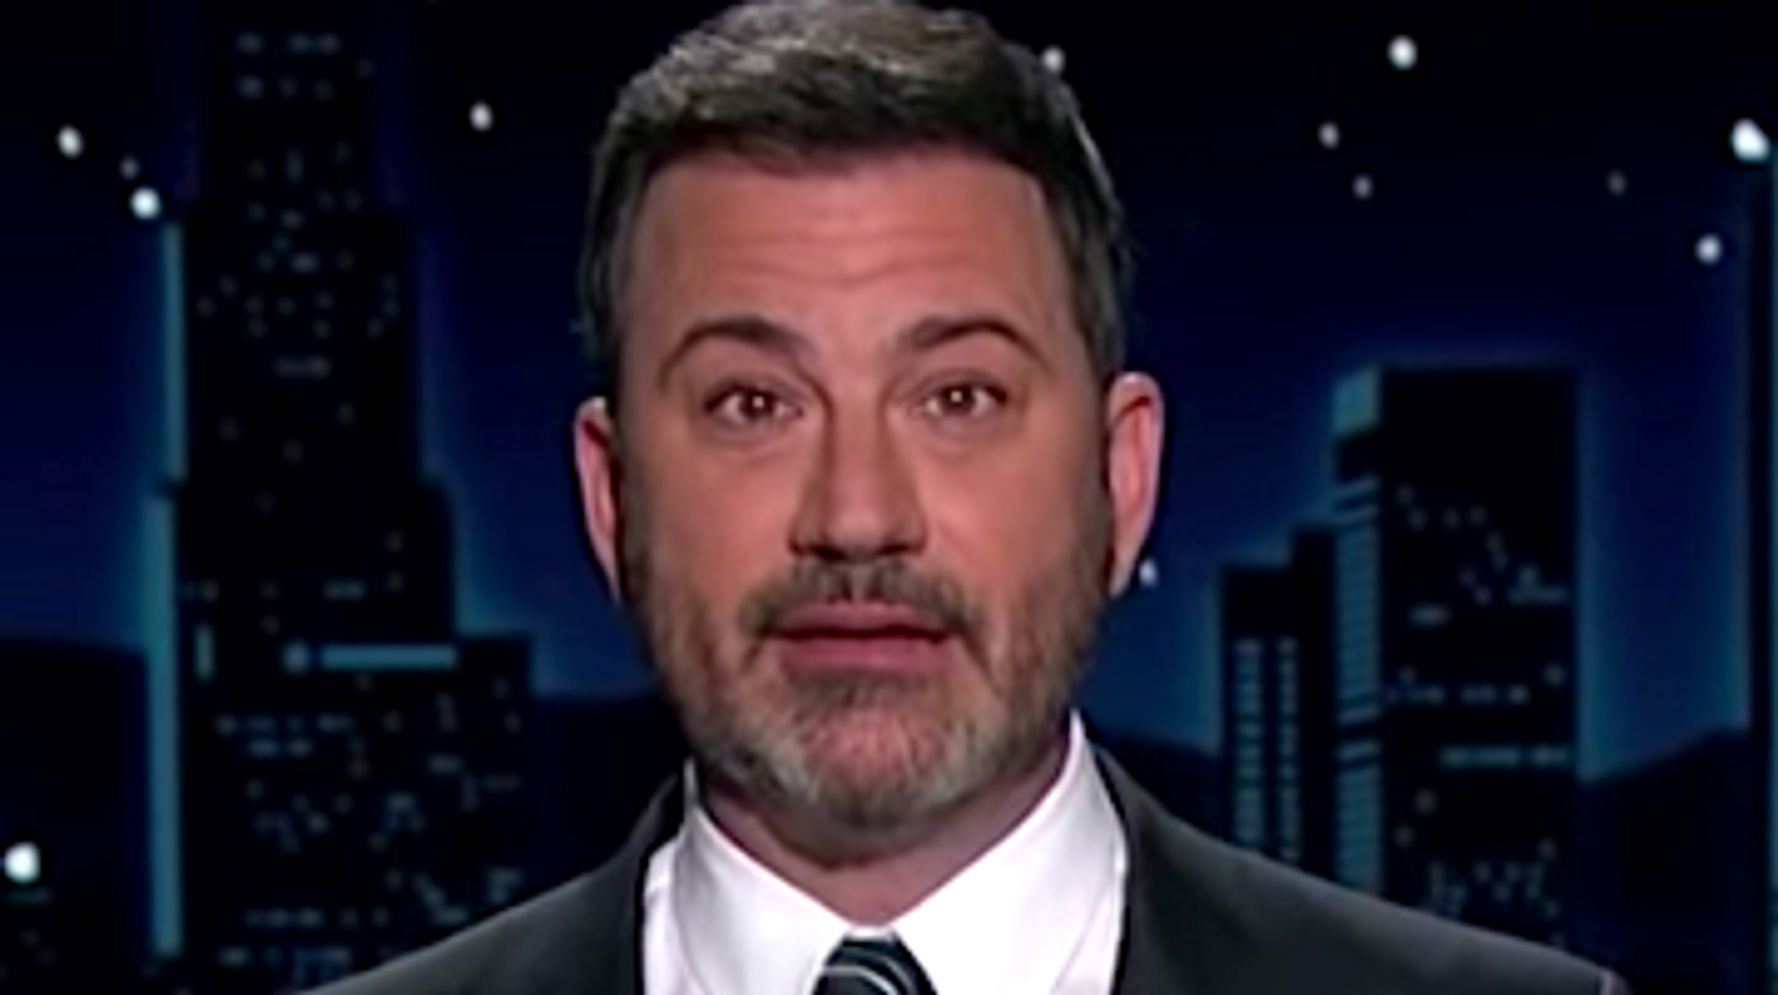 Jimmy Kimmel Has A Way To Trick Donald Trump Out Of The White House For Good